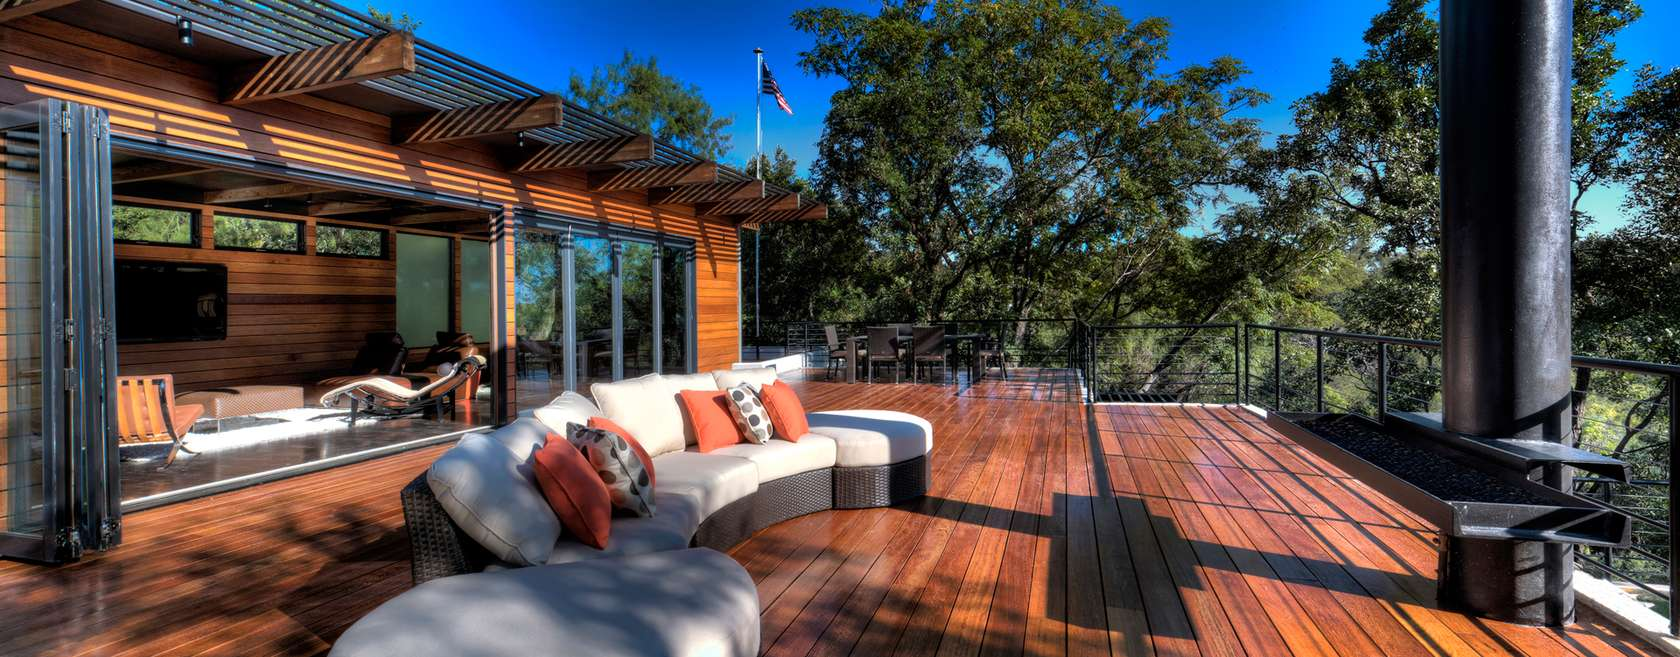 Outdoor Couch - Environmentally responsible home san antonio